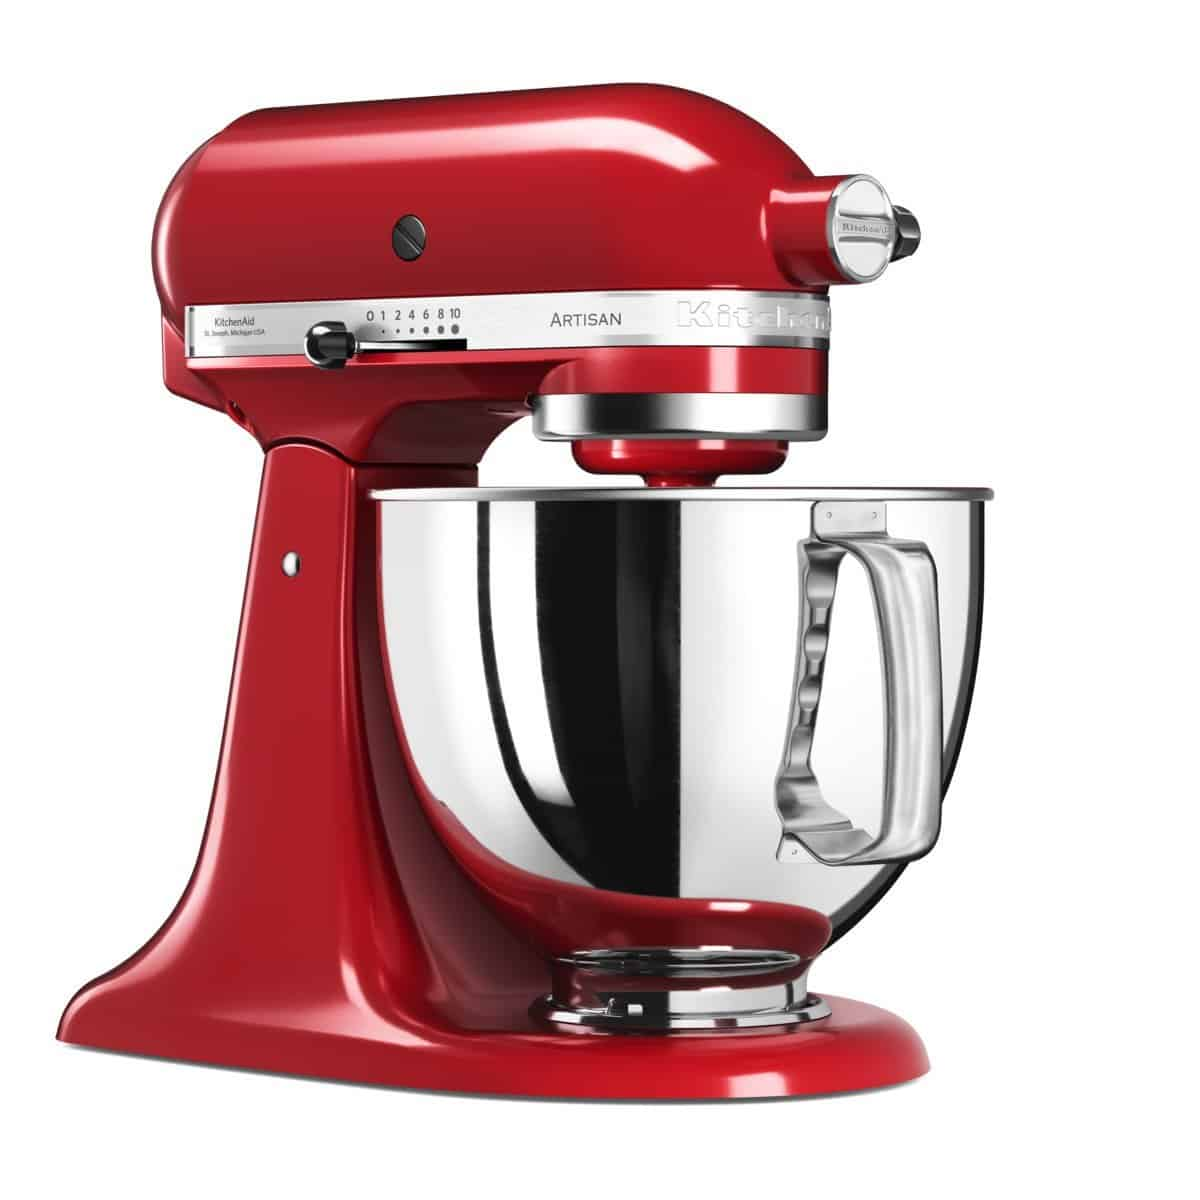 savori urbane kotanyi mixer-artisan-48l-model-125-empire-red-kitchenaid